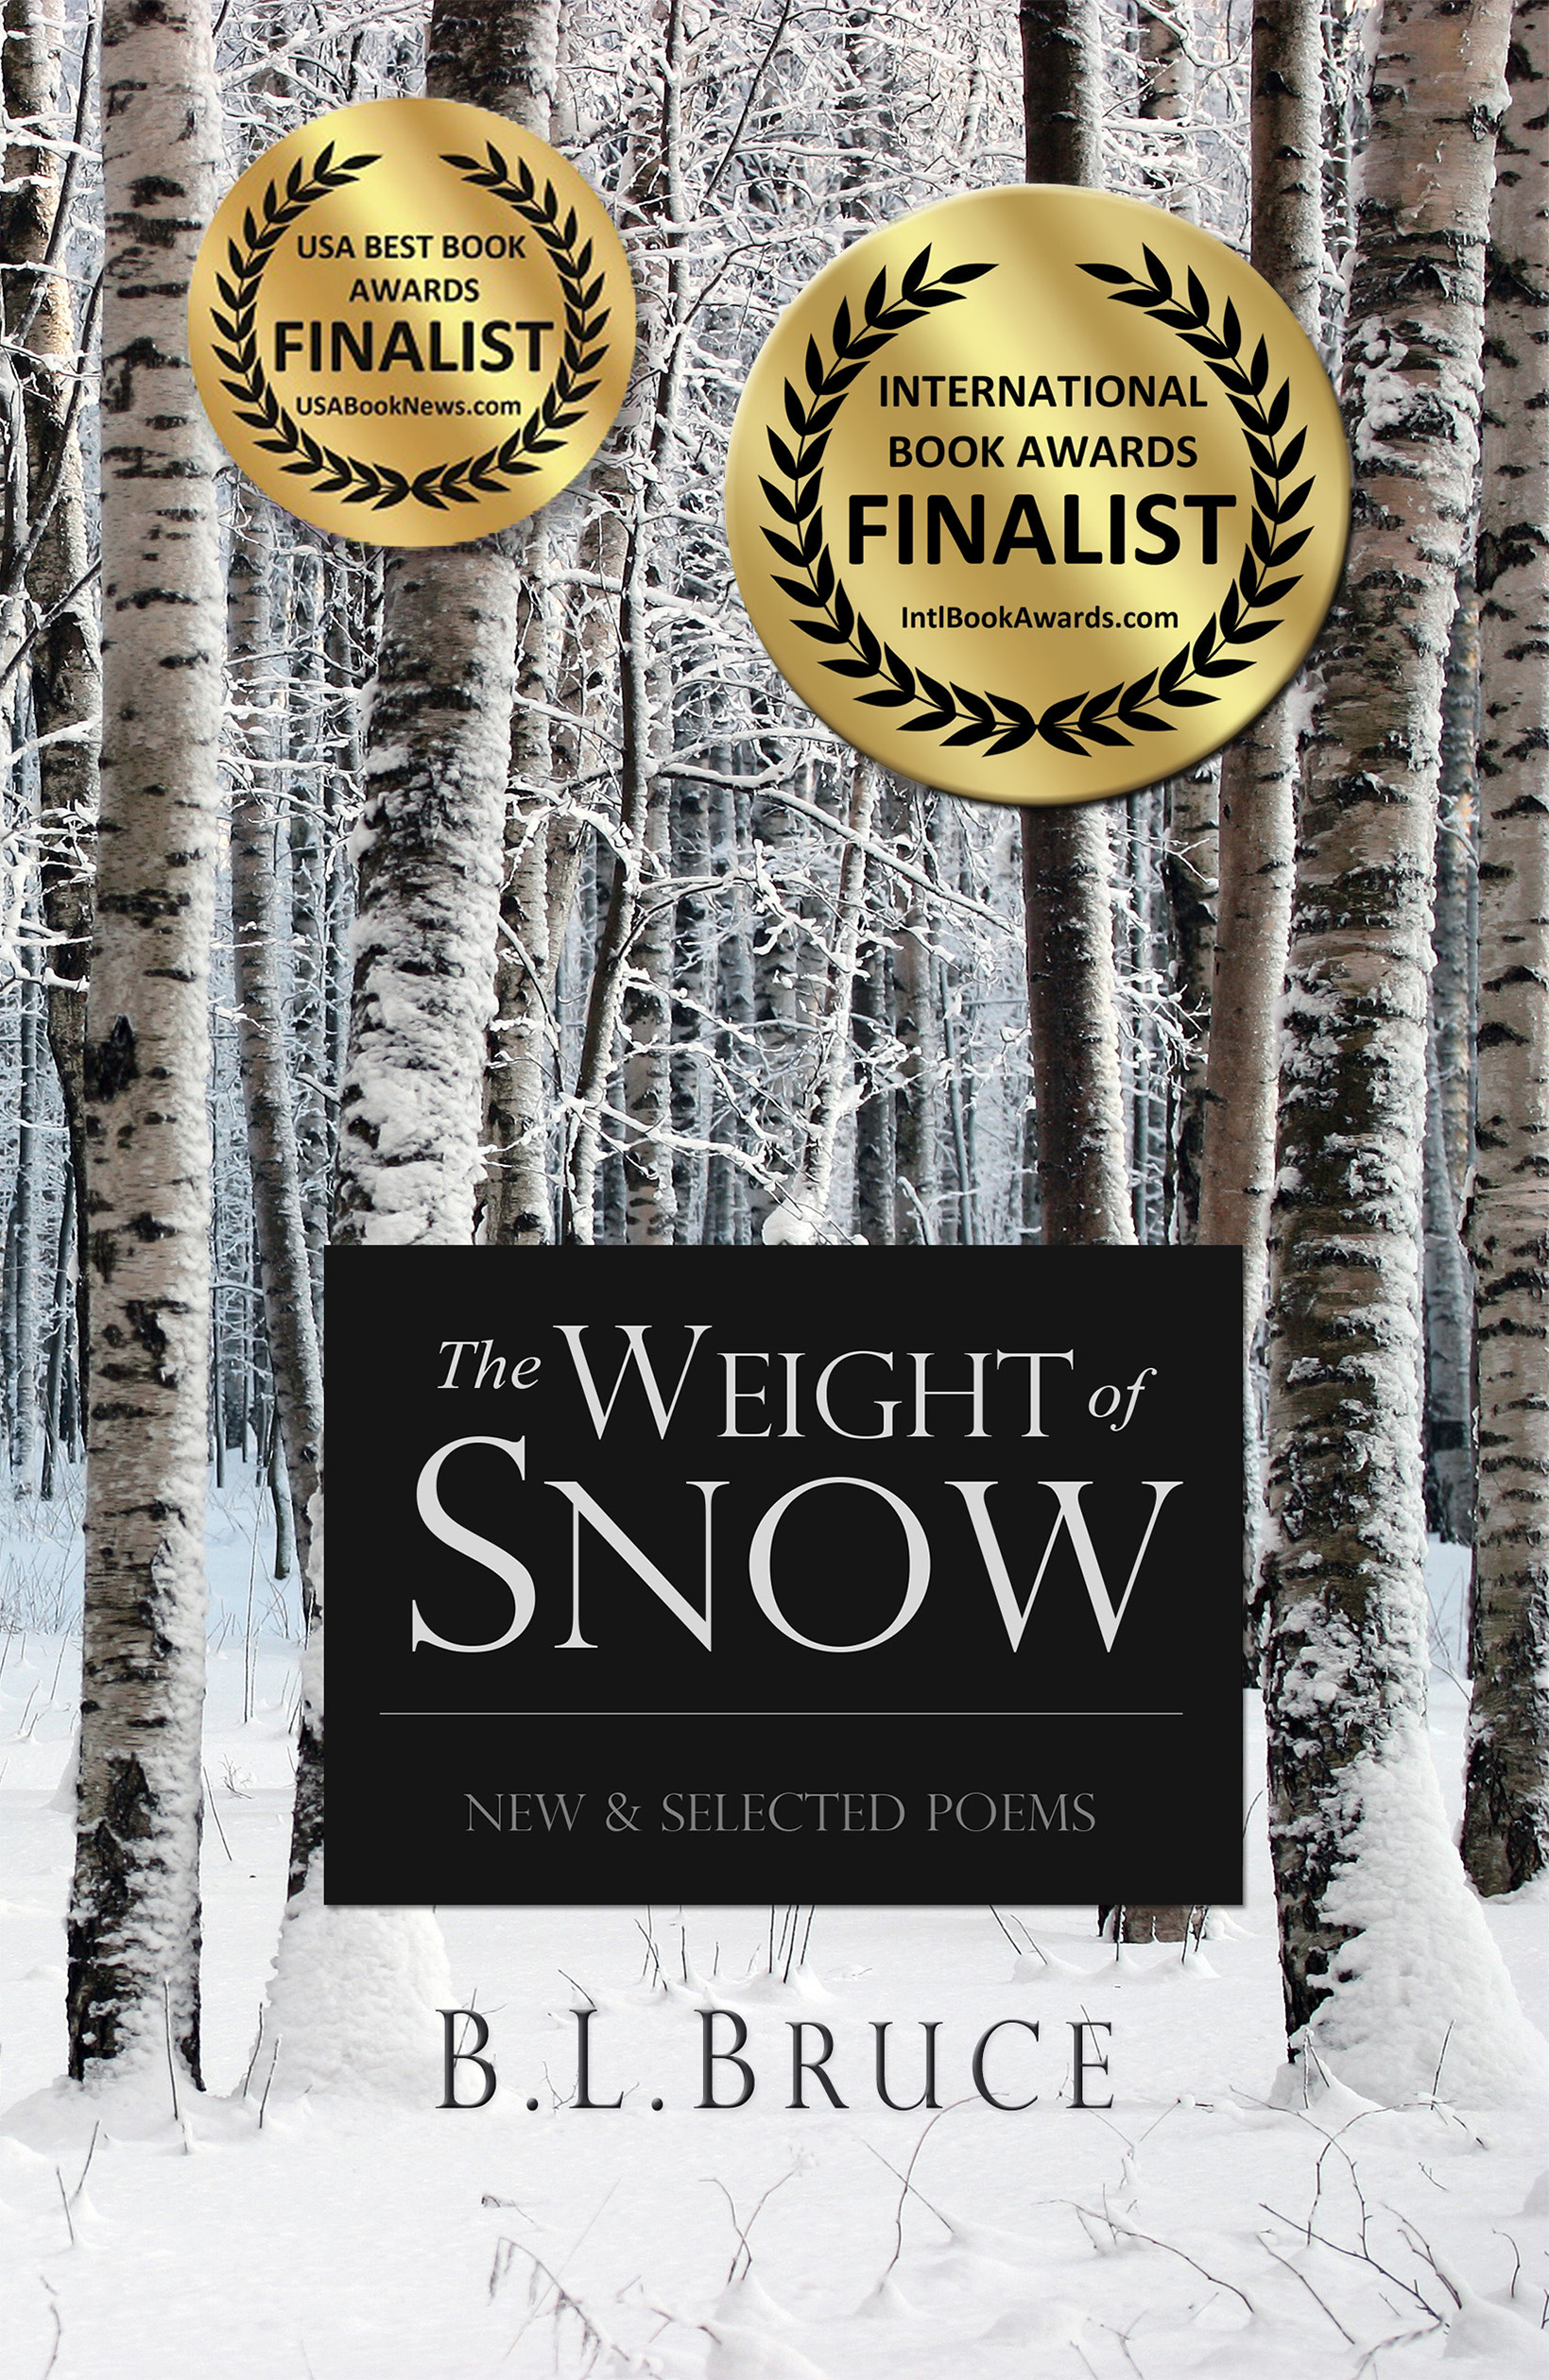 The Weight of Snow: New & Selected Poems